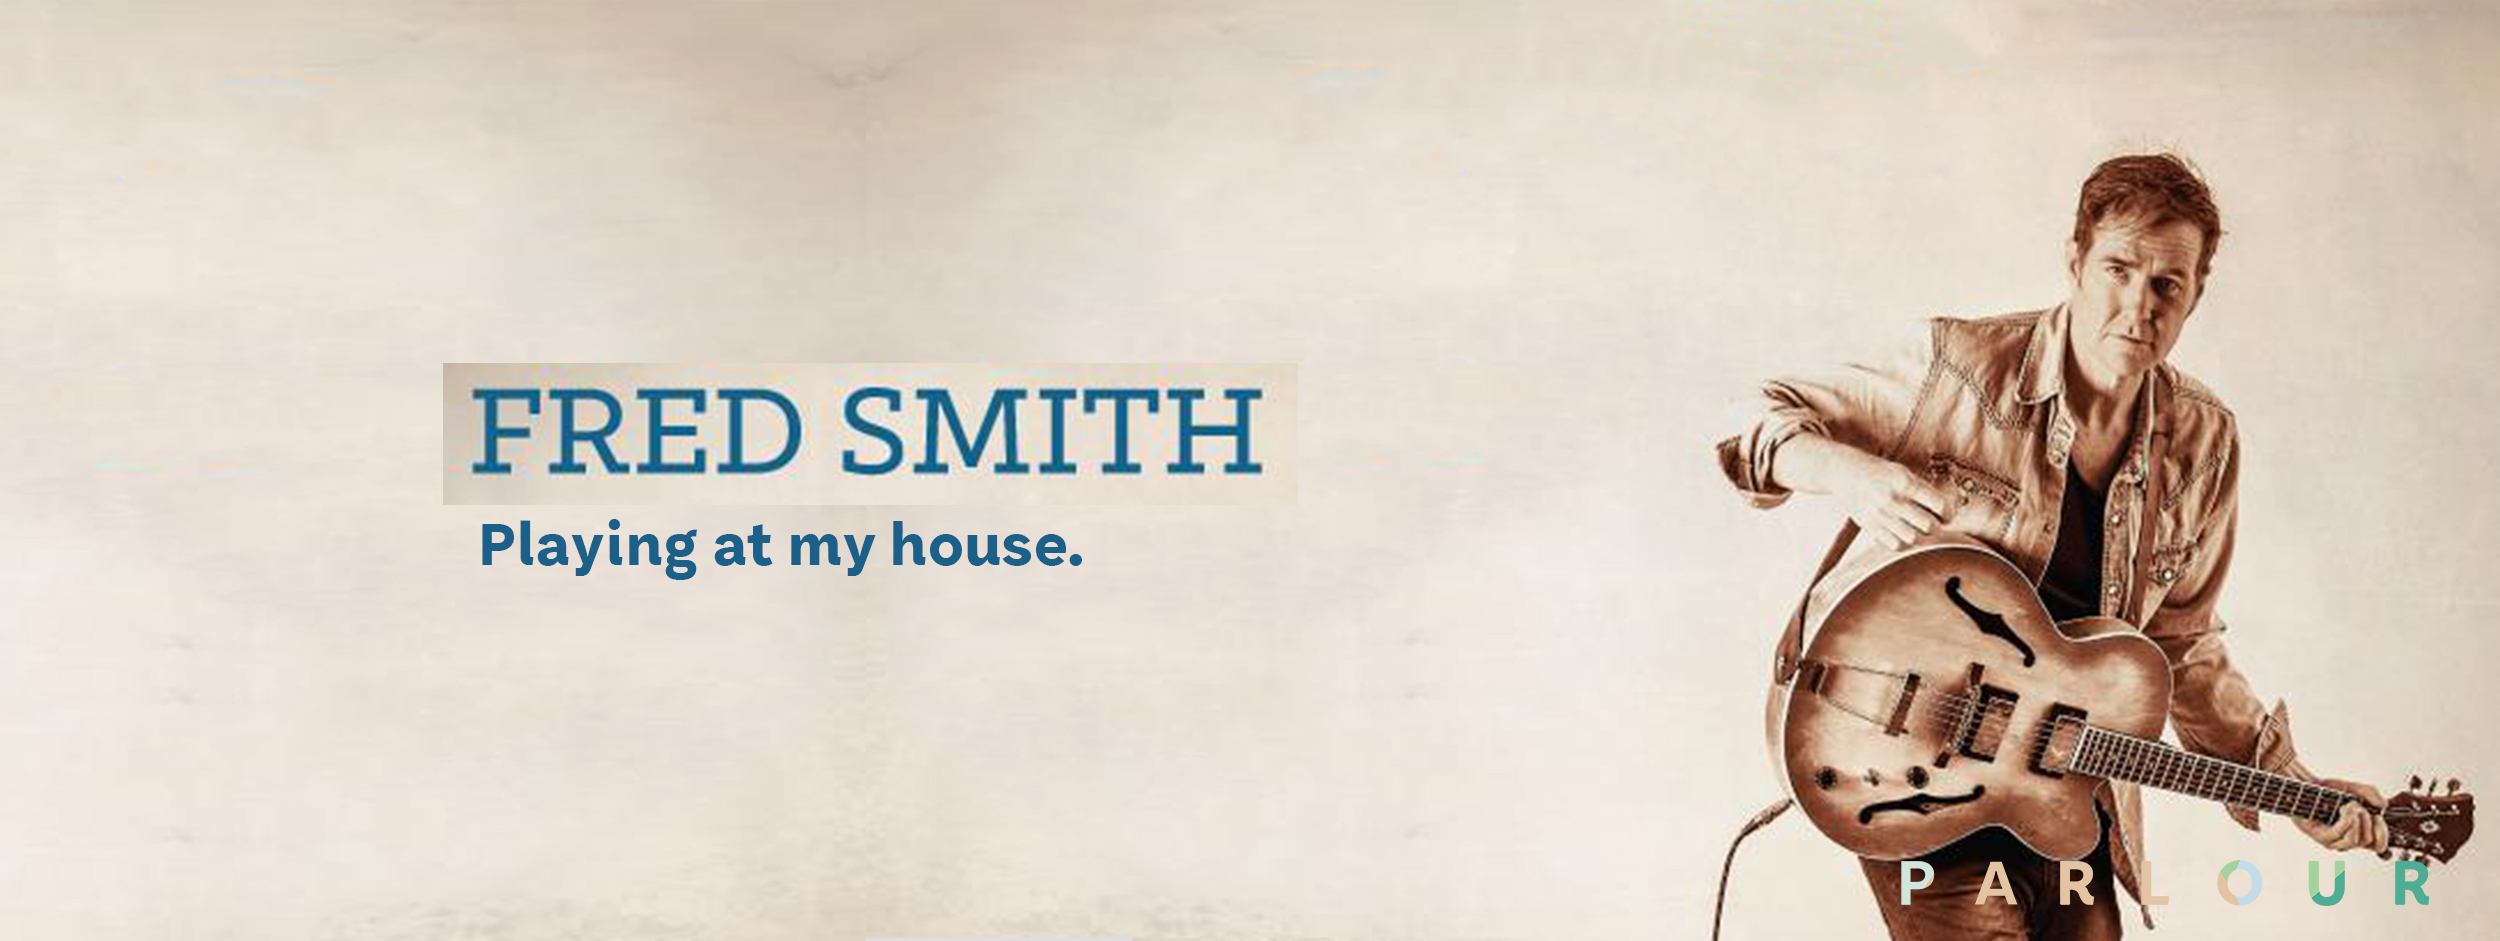 Fred Smith Banner.jpg